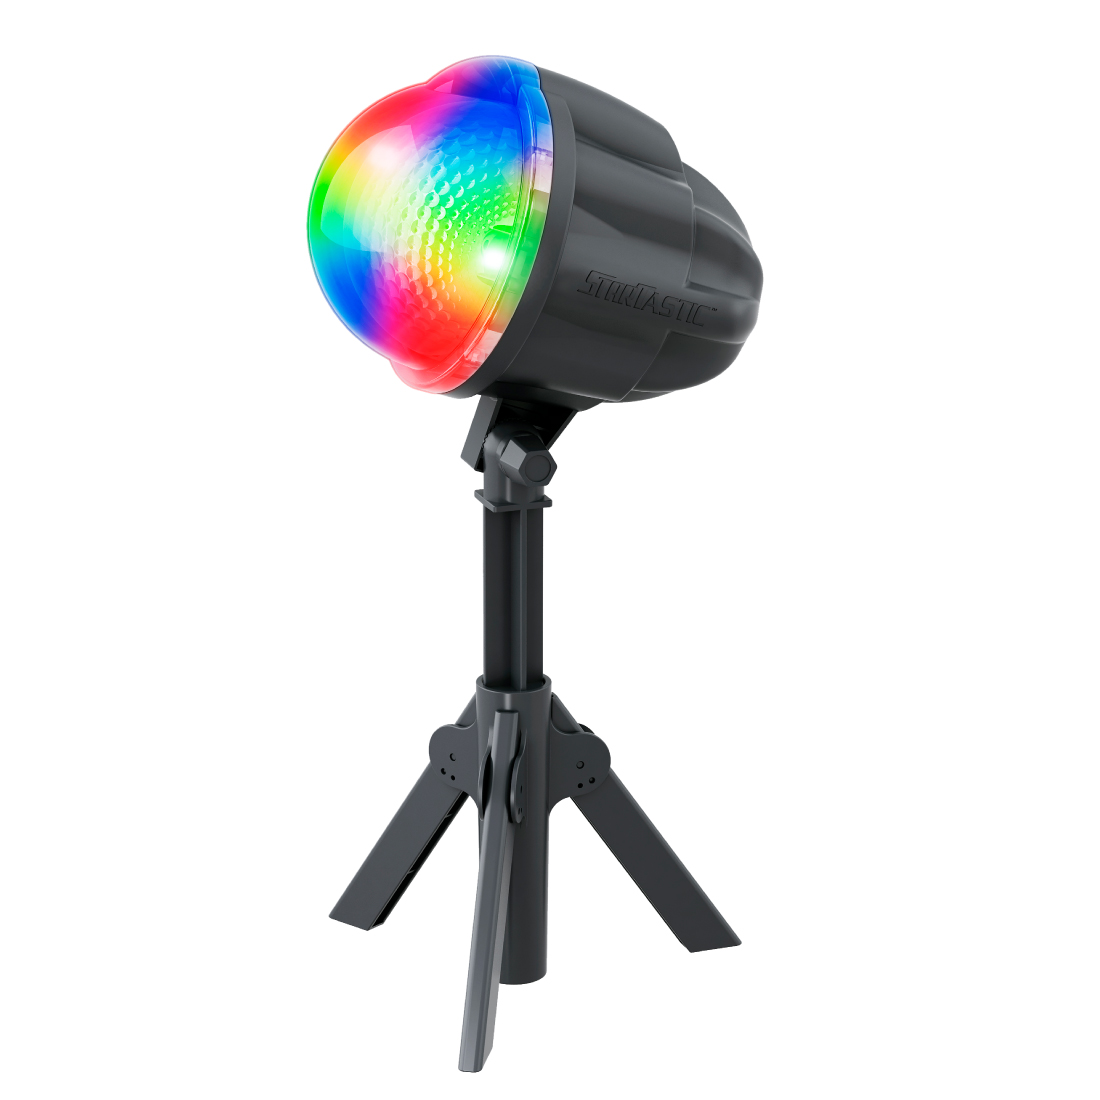 An image of StarTastic Max LED Projector